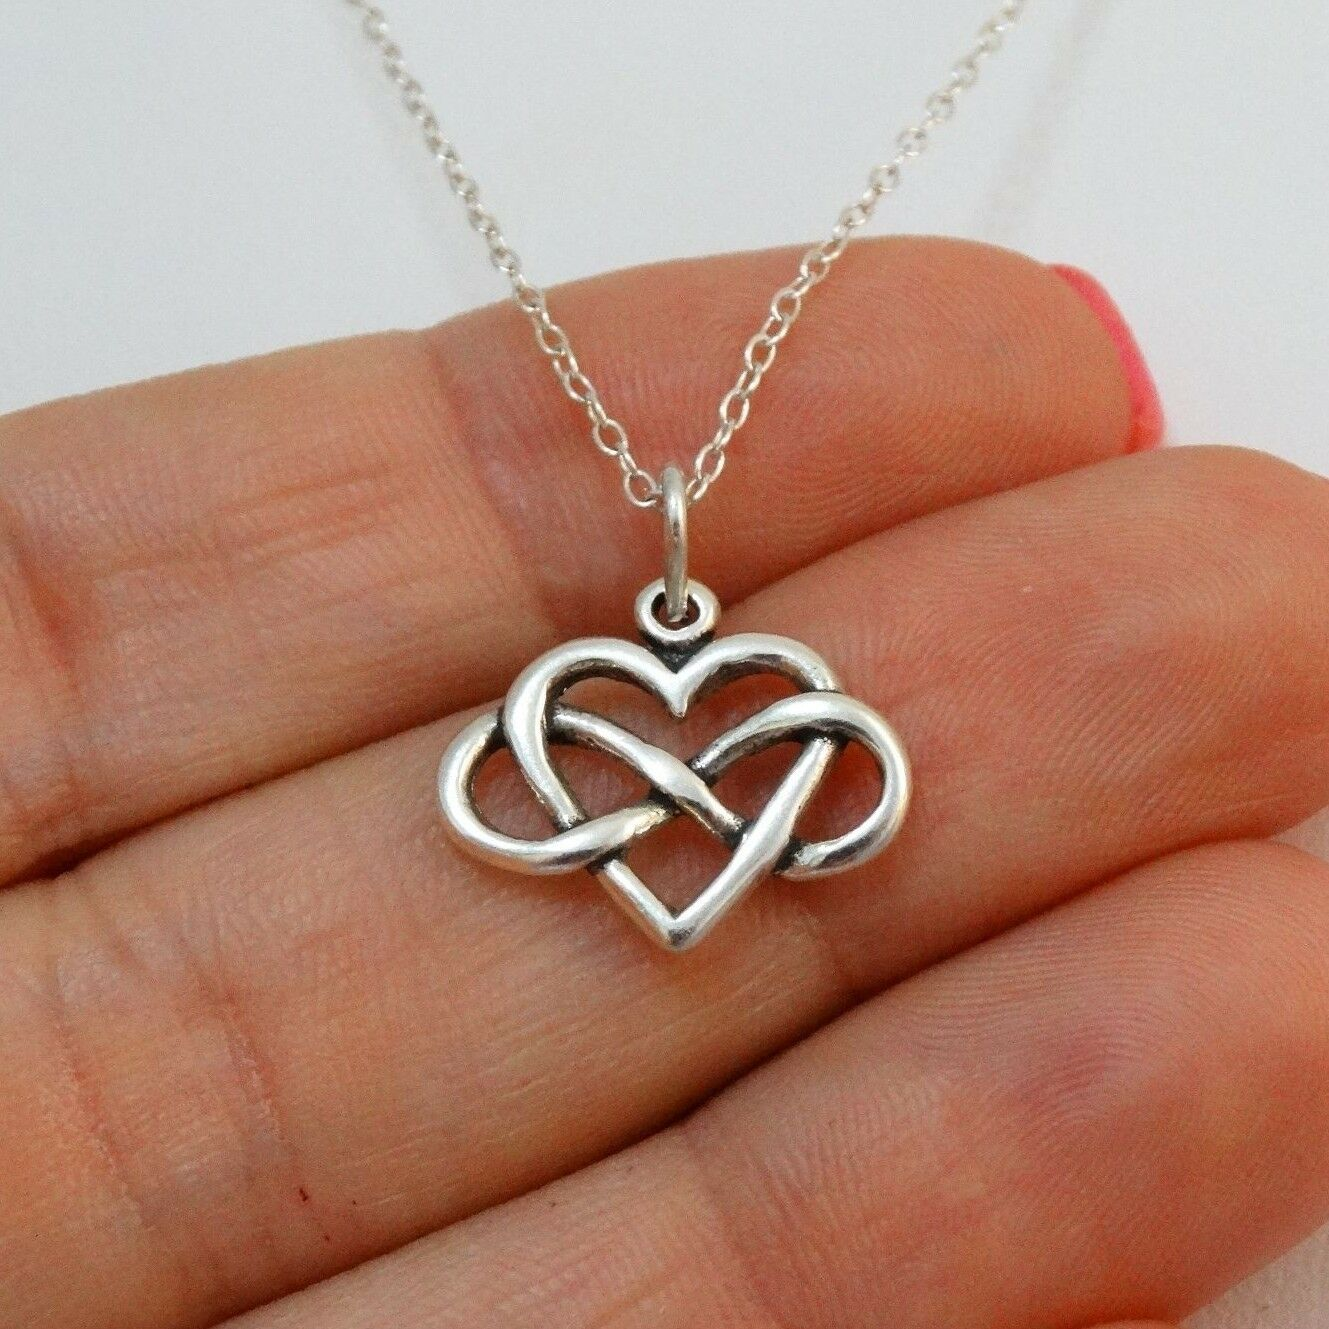 Petite Infinity Heart Charm Necklace - 925 Sterling Silver